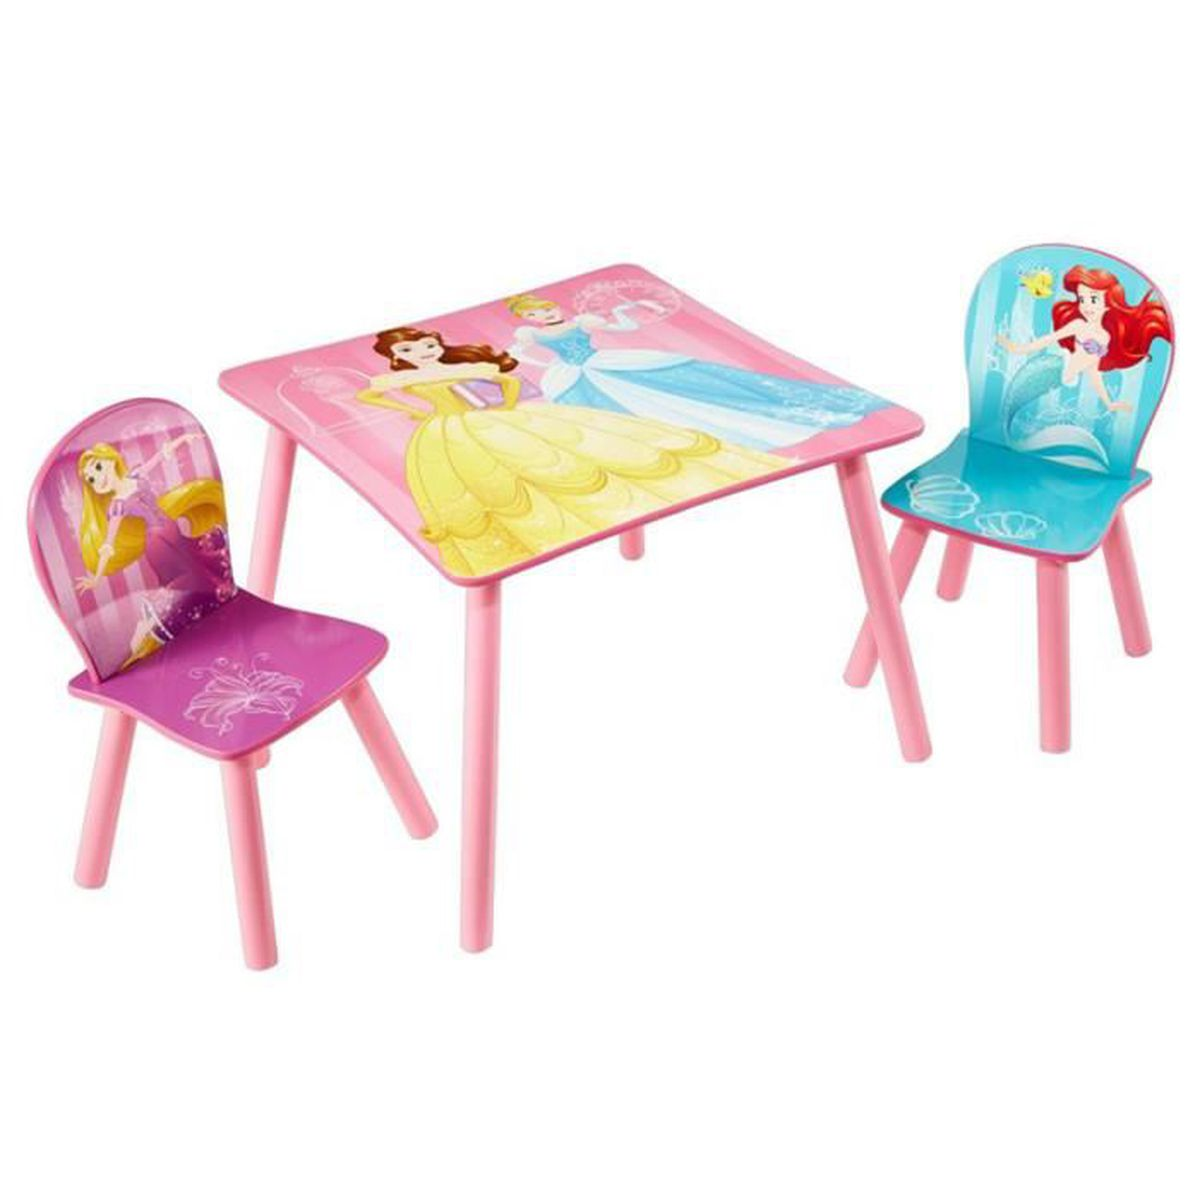 ensemble table et 2 chaises pour enfant motif disney princesses achat vente chaise. Black Bedroom Furniture Sets. Home Design Ideas